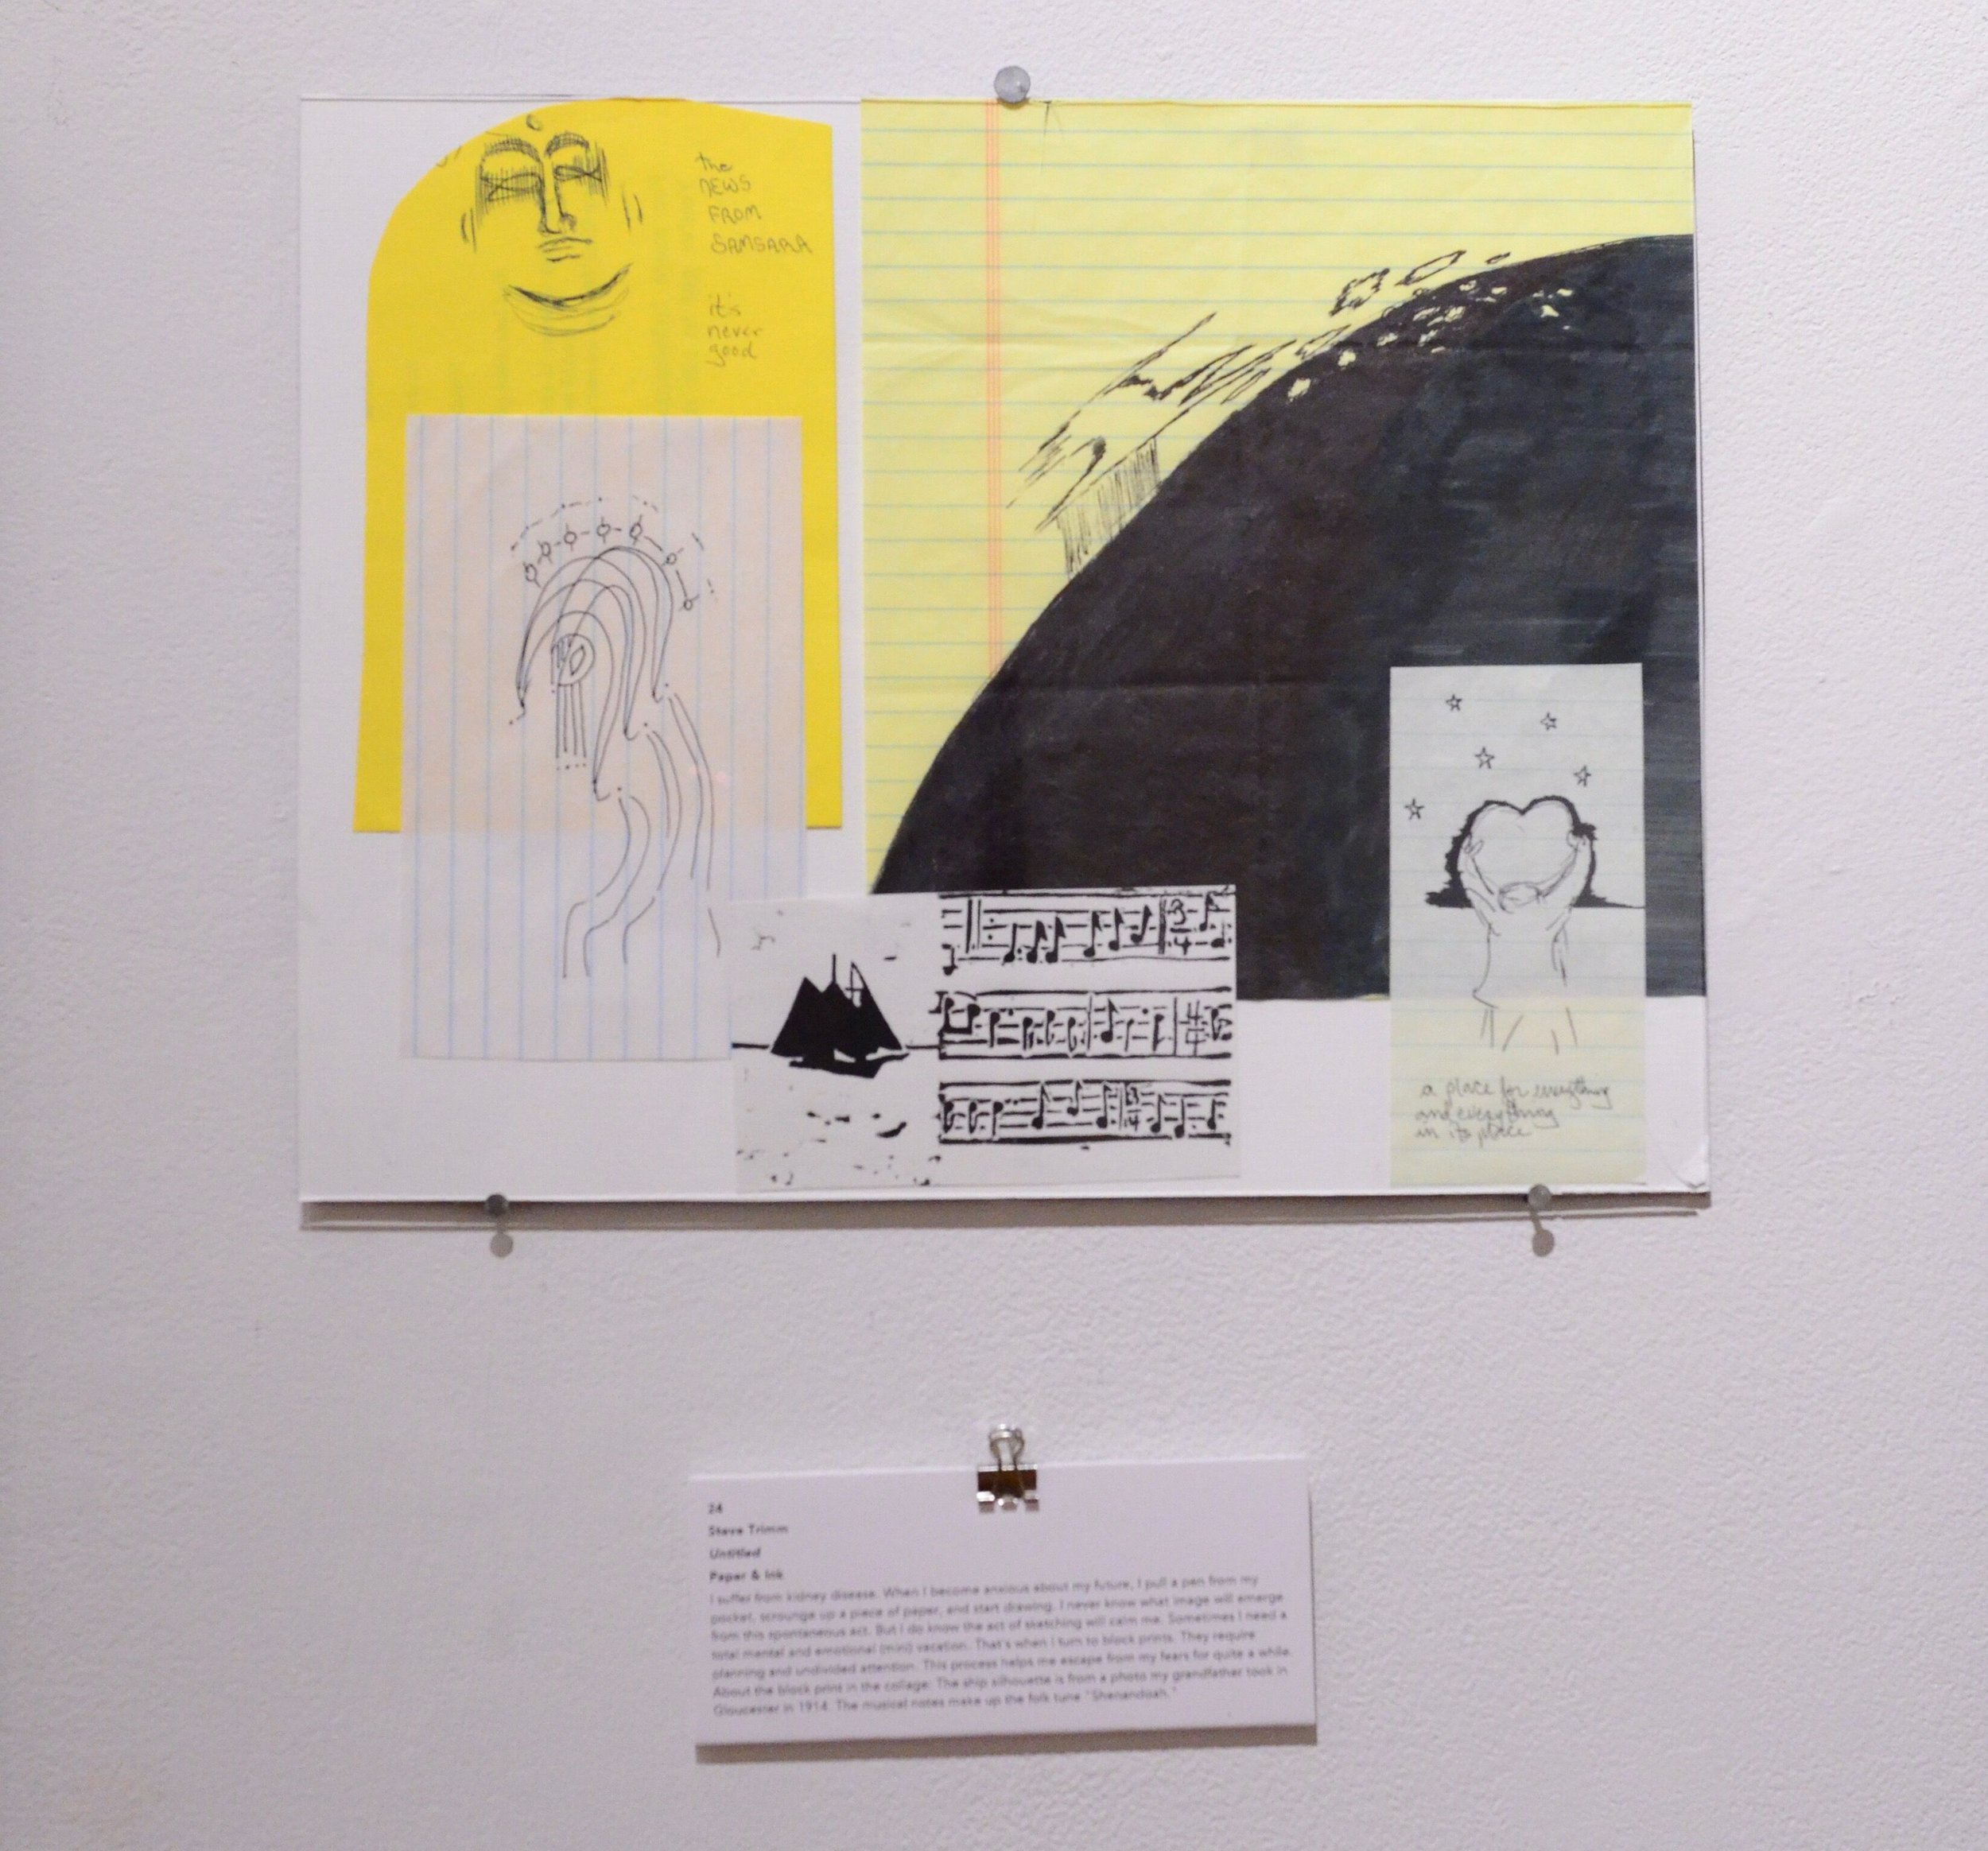 Untitled by Steve Trimm. Paper and Ink Medium. White, yellow, and black background with a collage of sketches including faces, music notes and ships. Caregiver and serious illness.